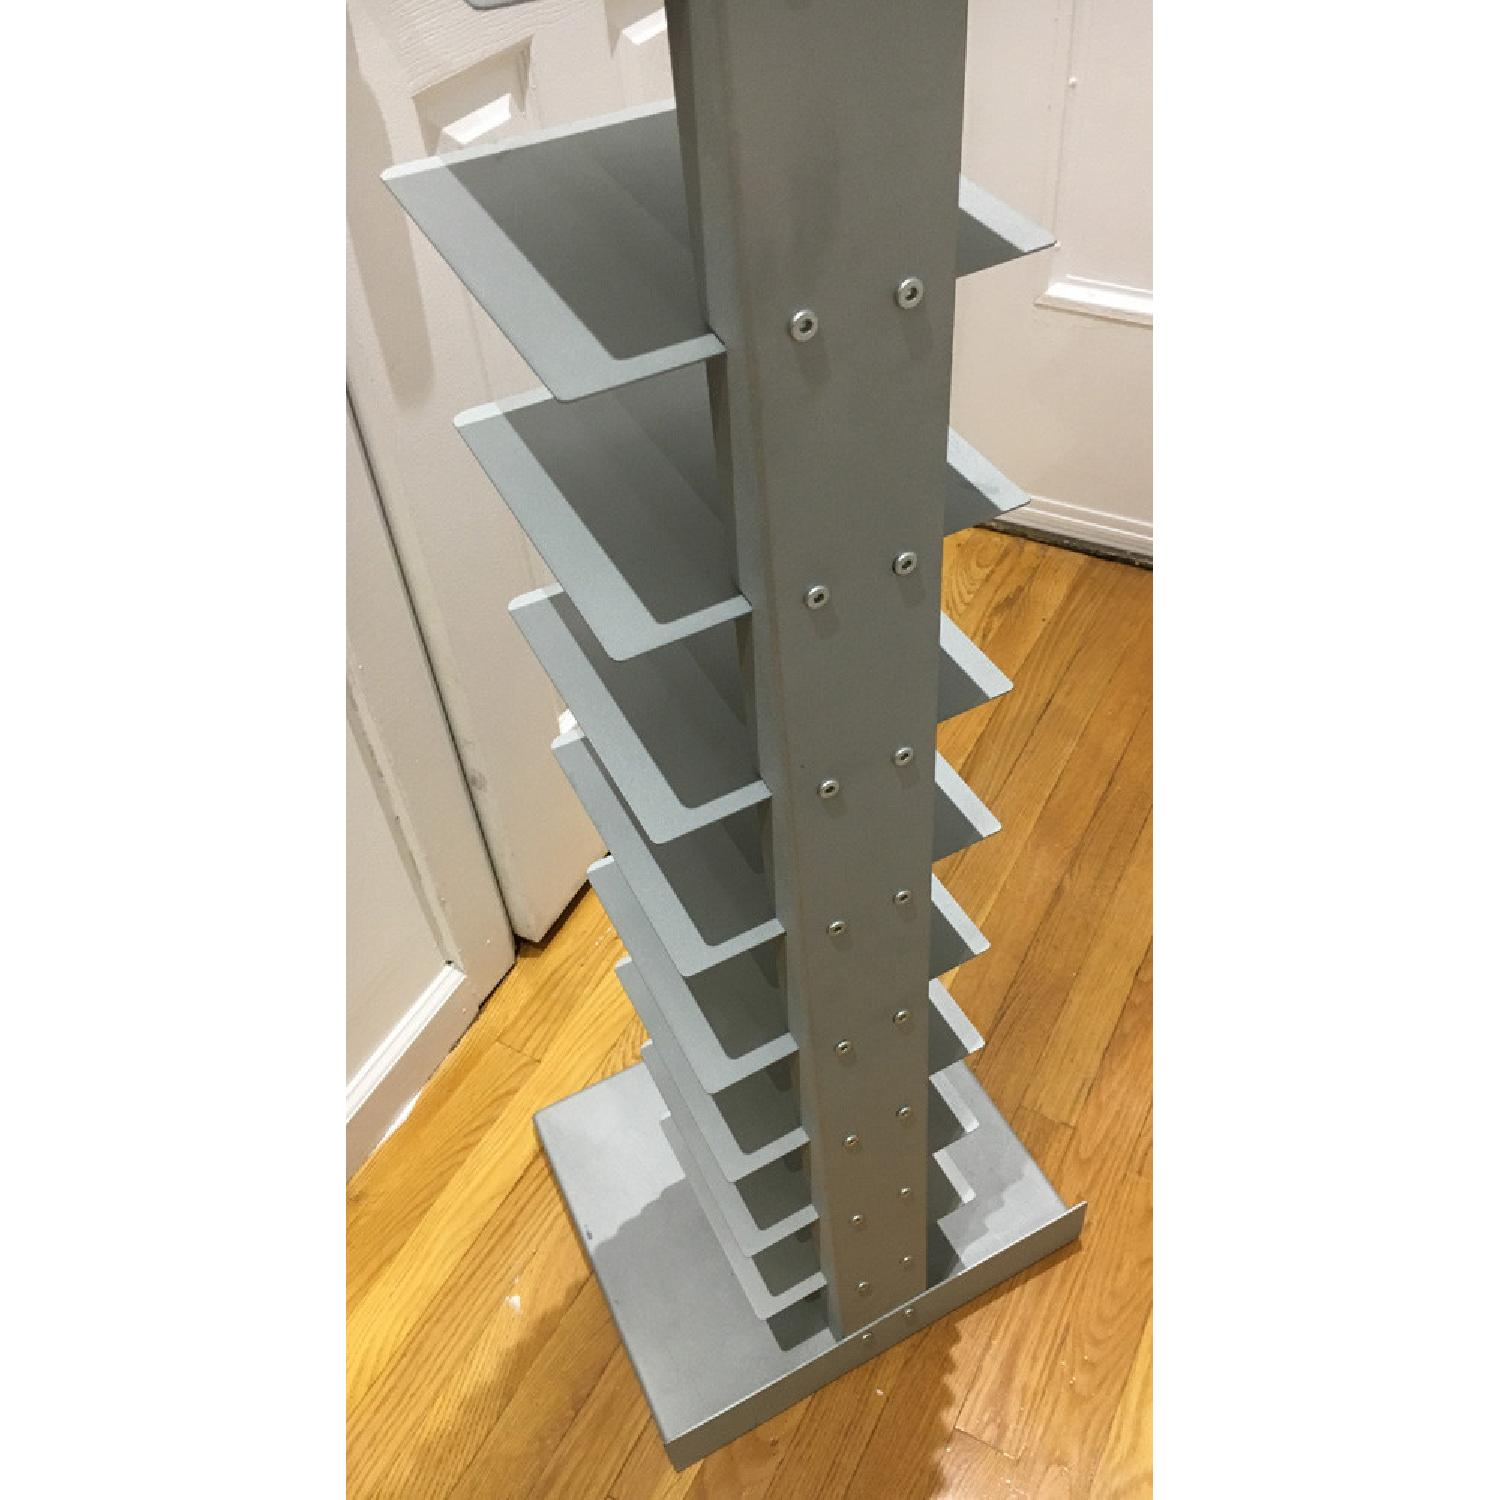 Southern Enterprises Spine Tower Metal Bookcases - image-2